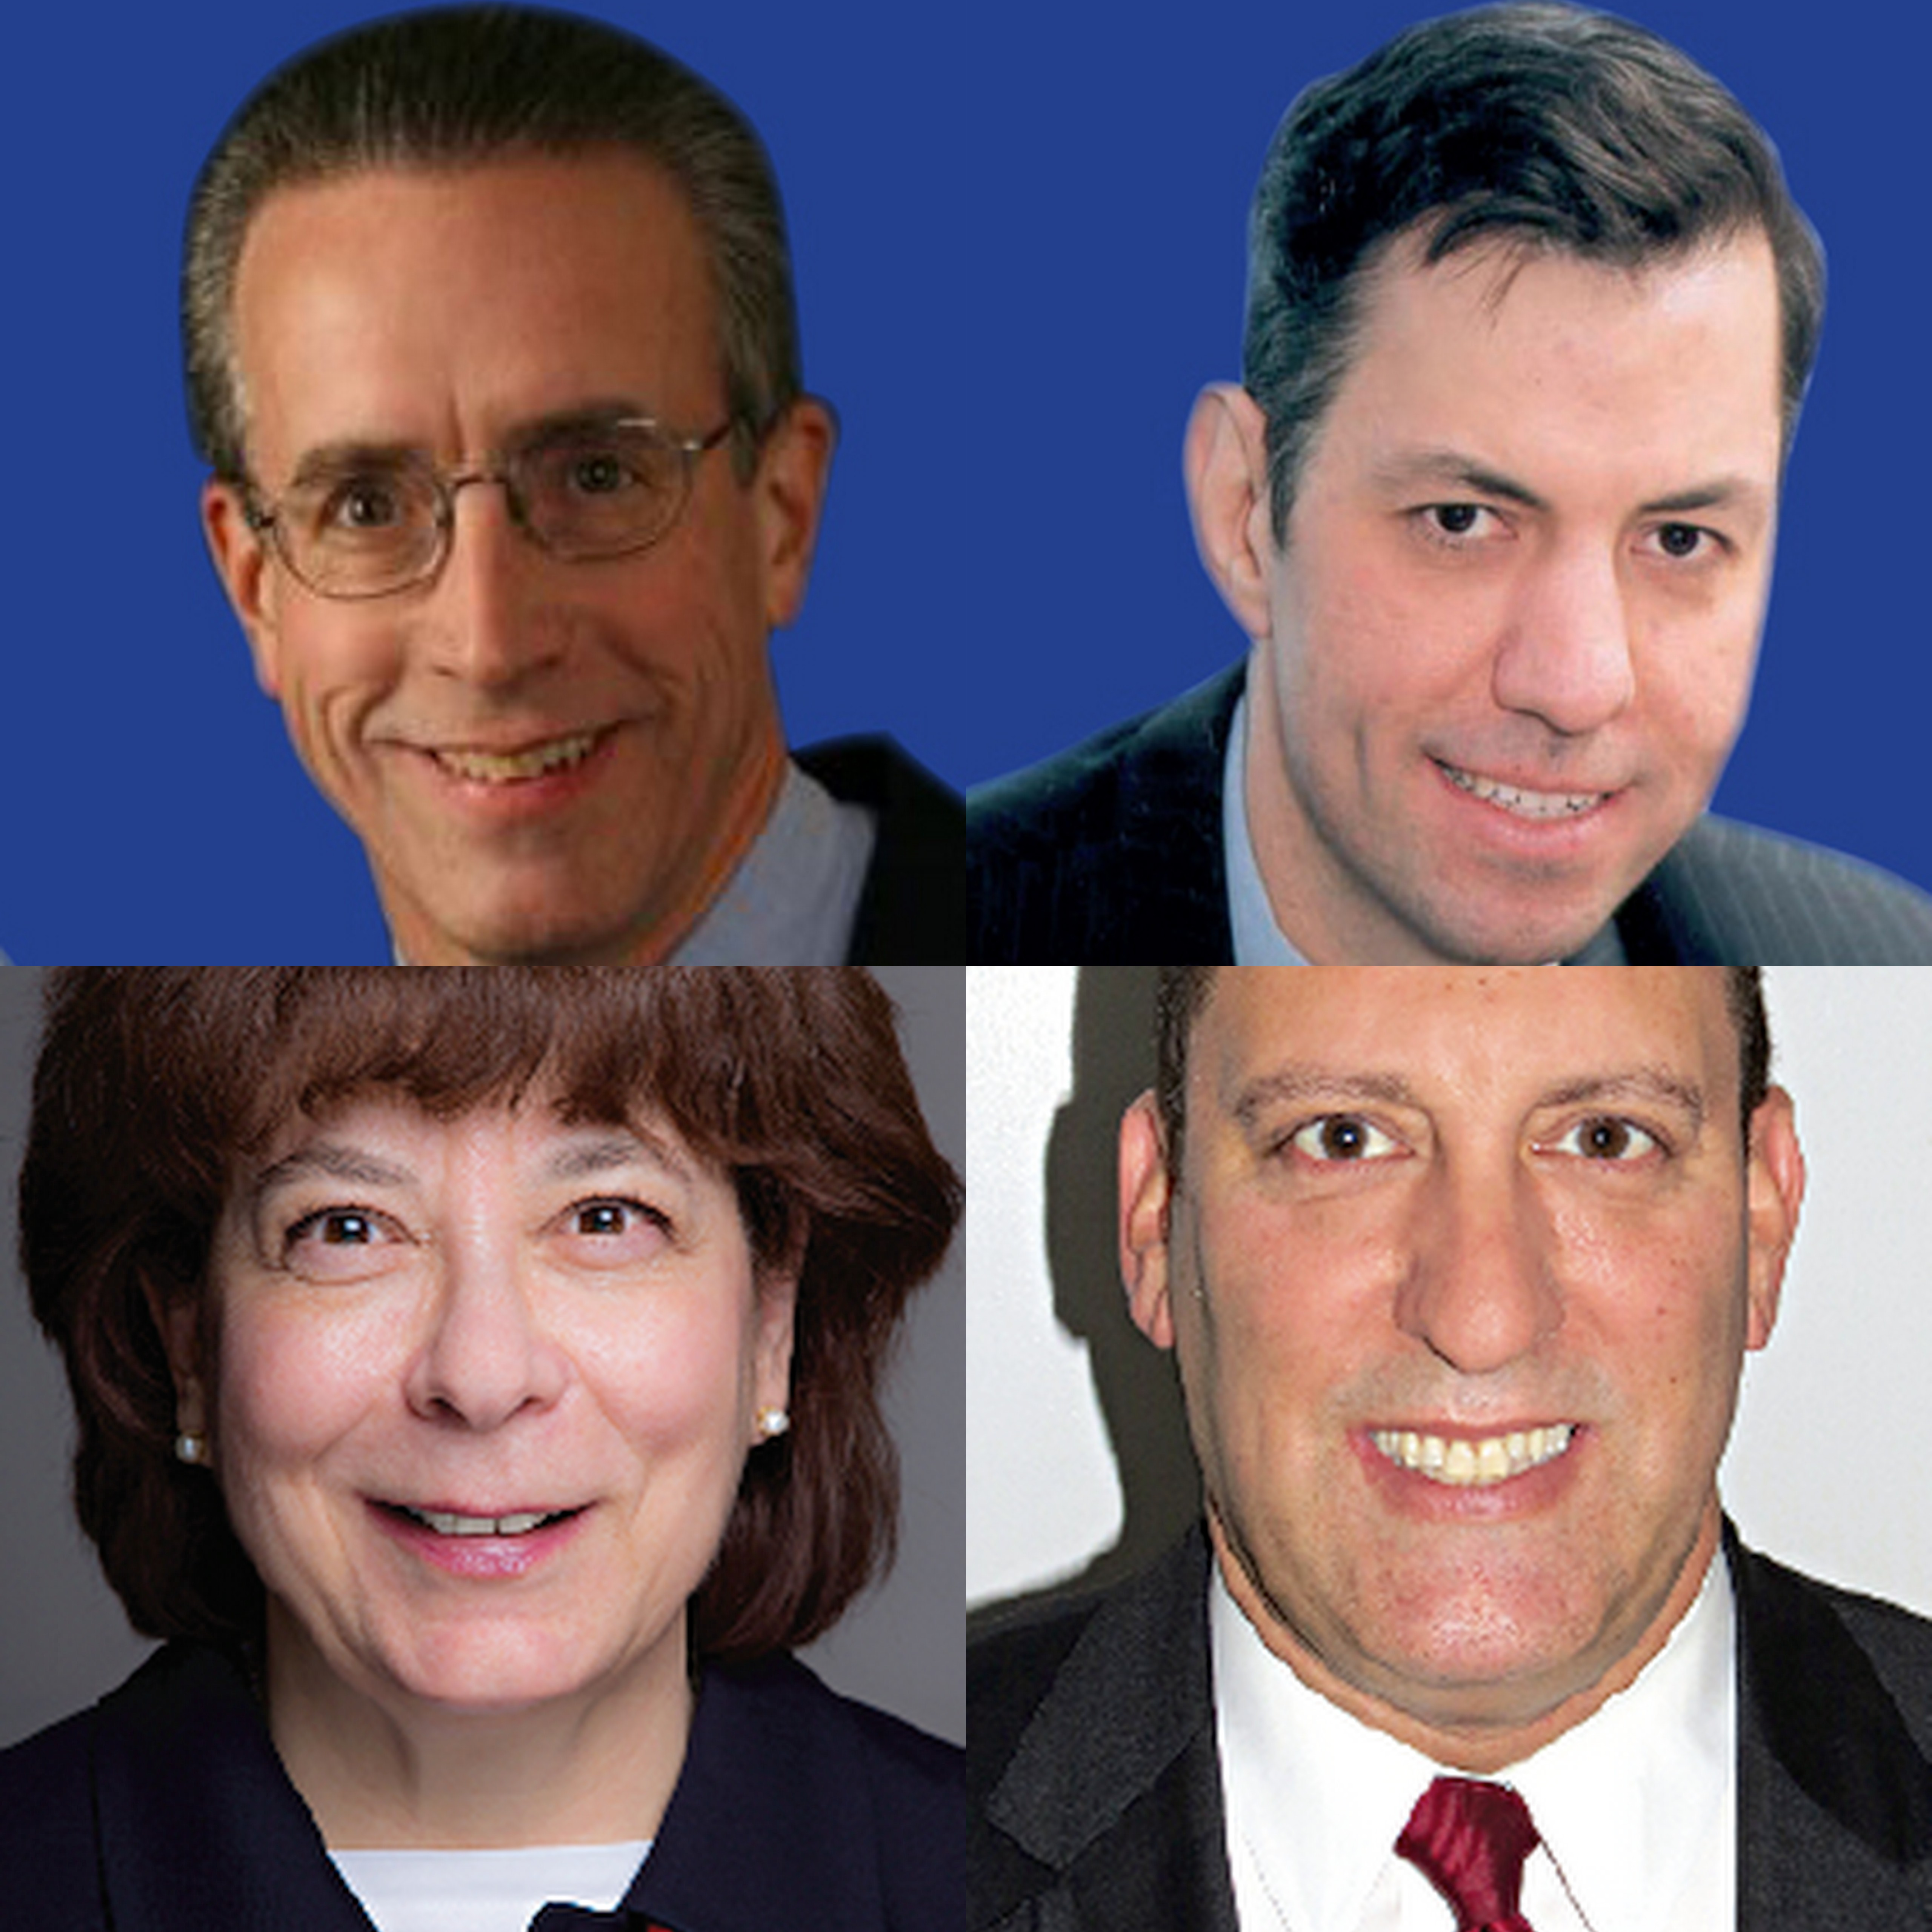 The four candidates for two Tuckahoe Trustee positions.